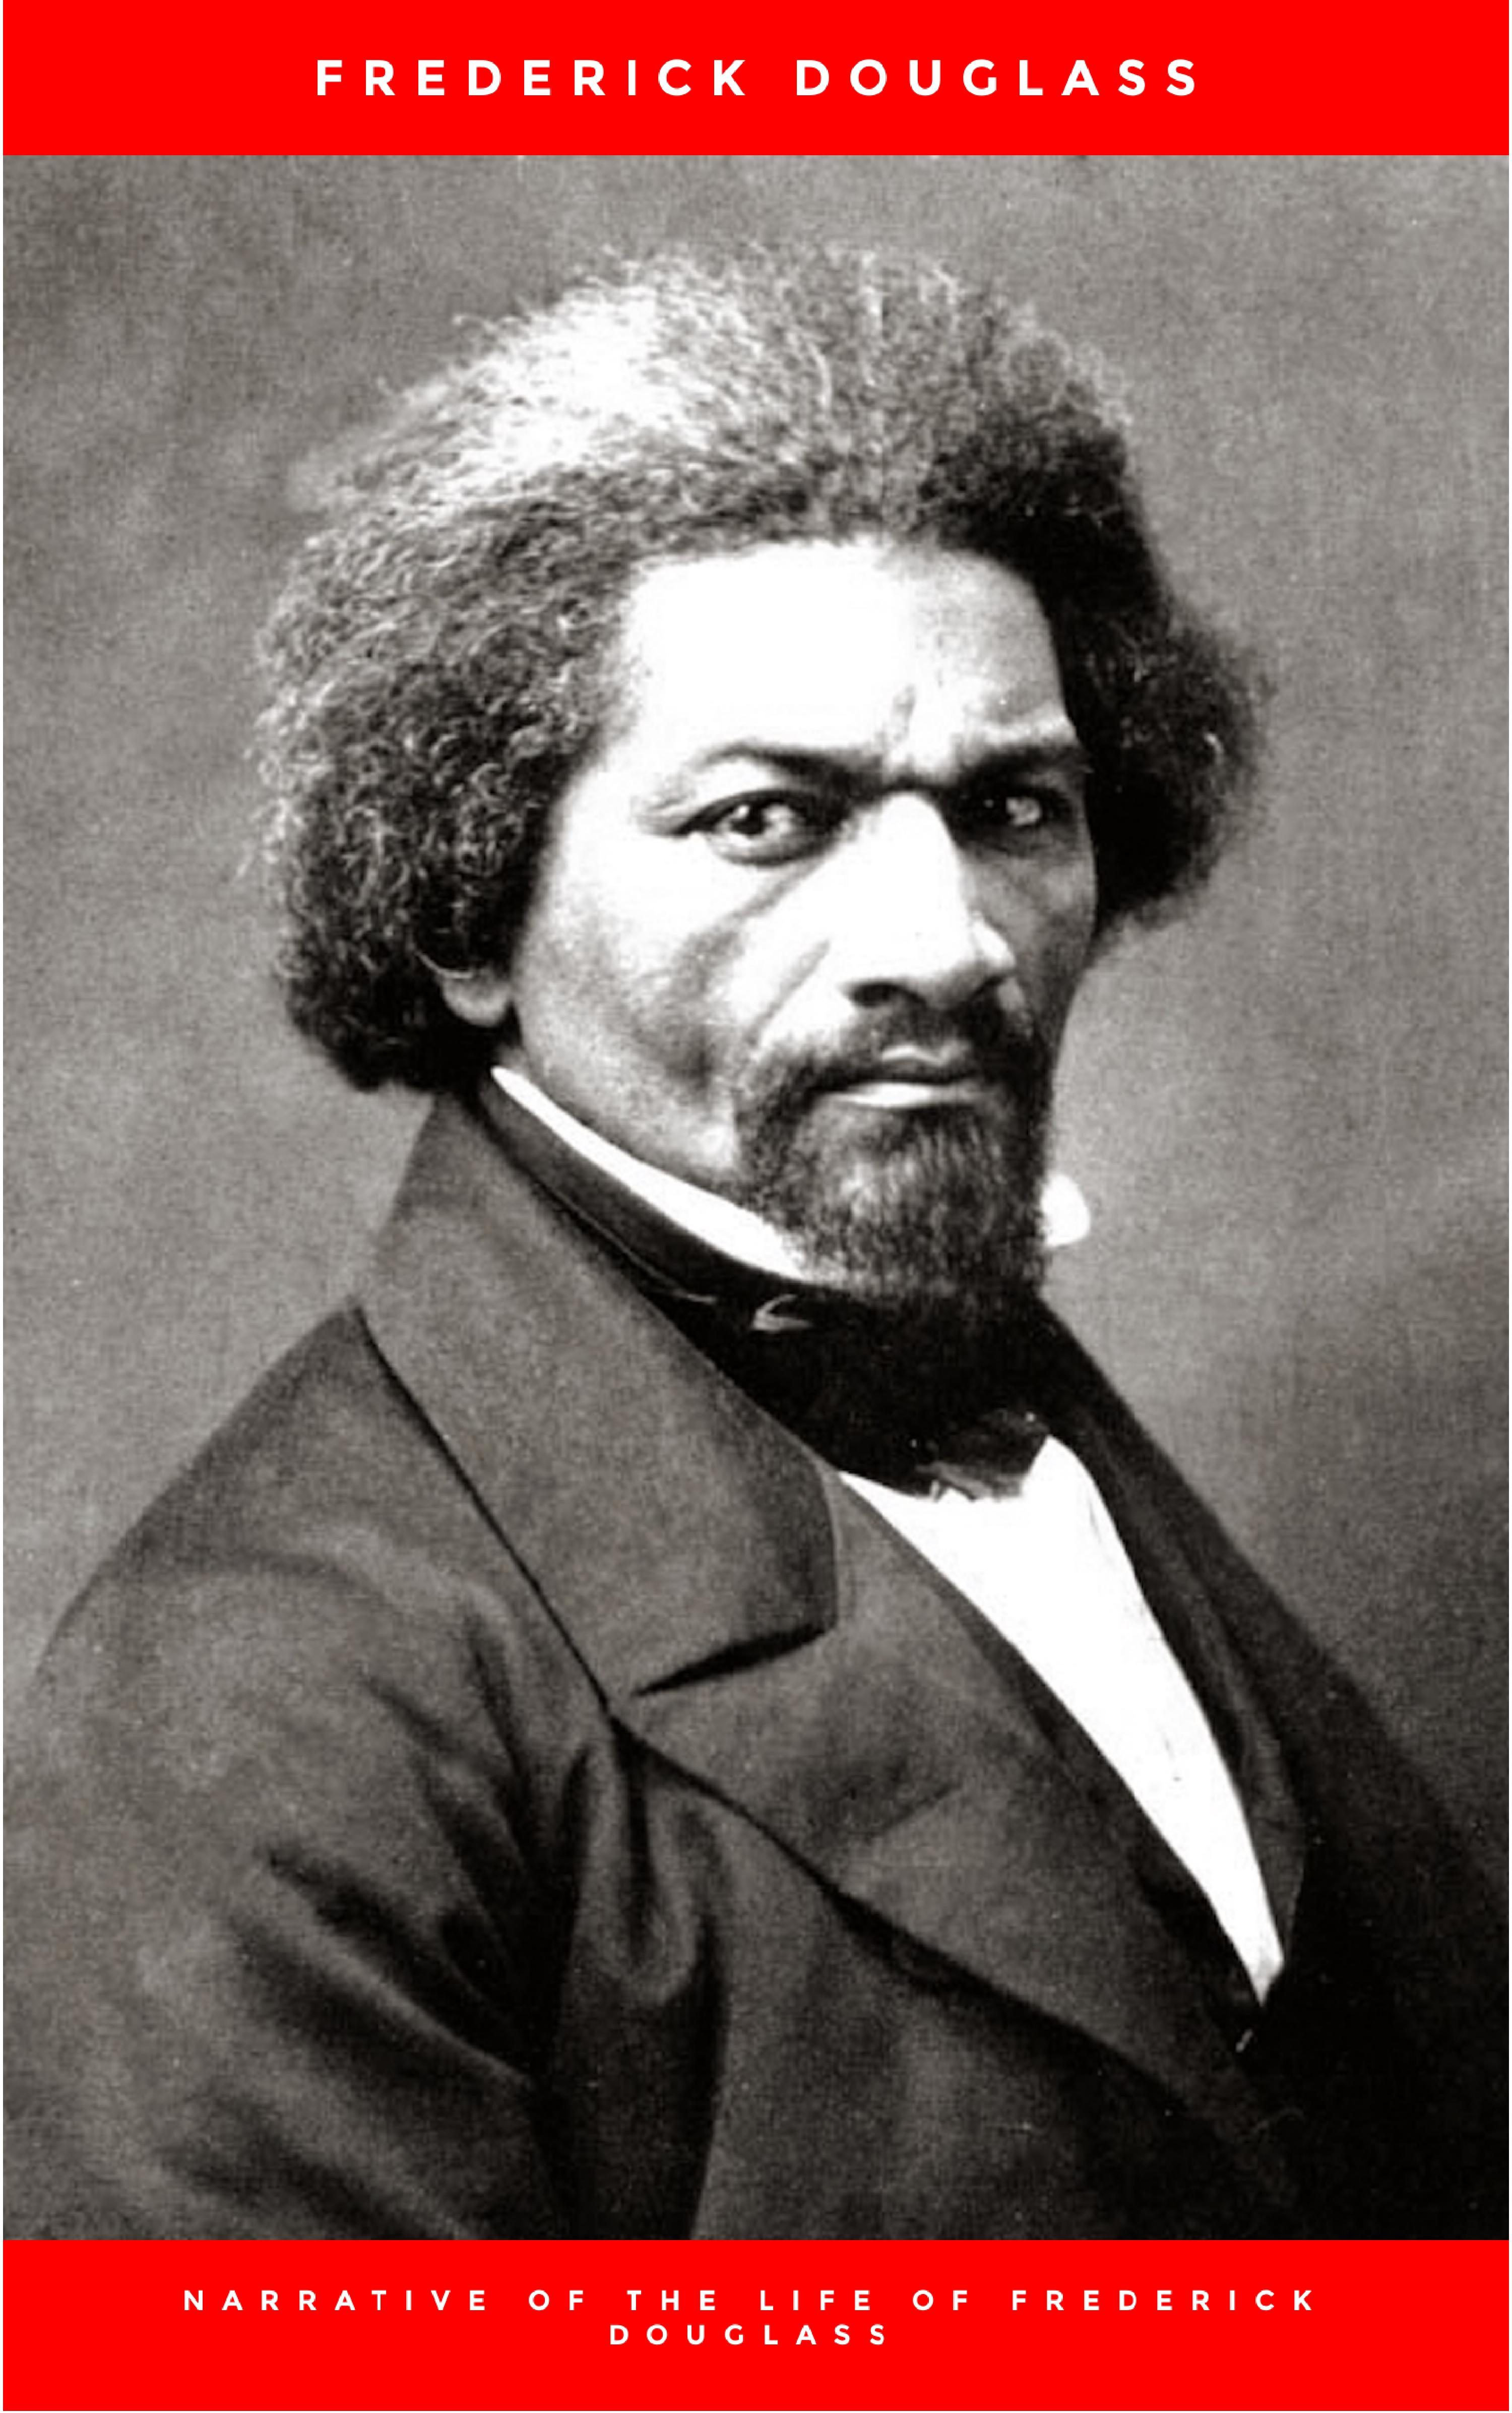 Frederick Douglass Narrative of the Life of Frederick Douglass, an American Slave